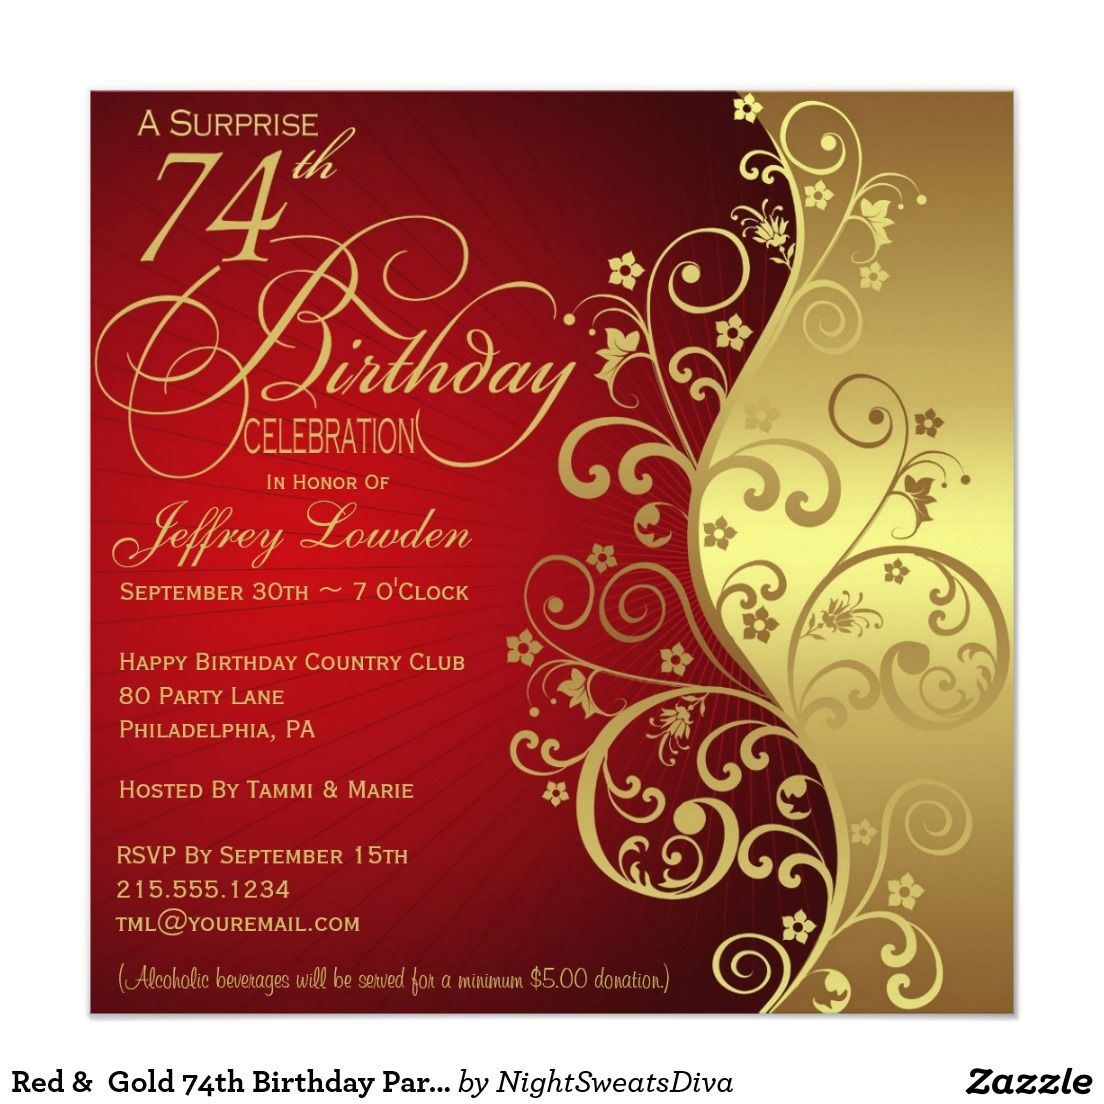 Create Your Own Invitation Zazzle Com 80th Birthday Invitations 60th Birthday Invitations 50th Birthday Invitations